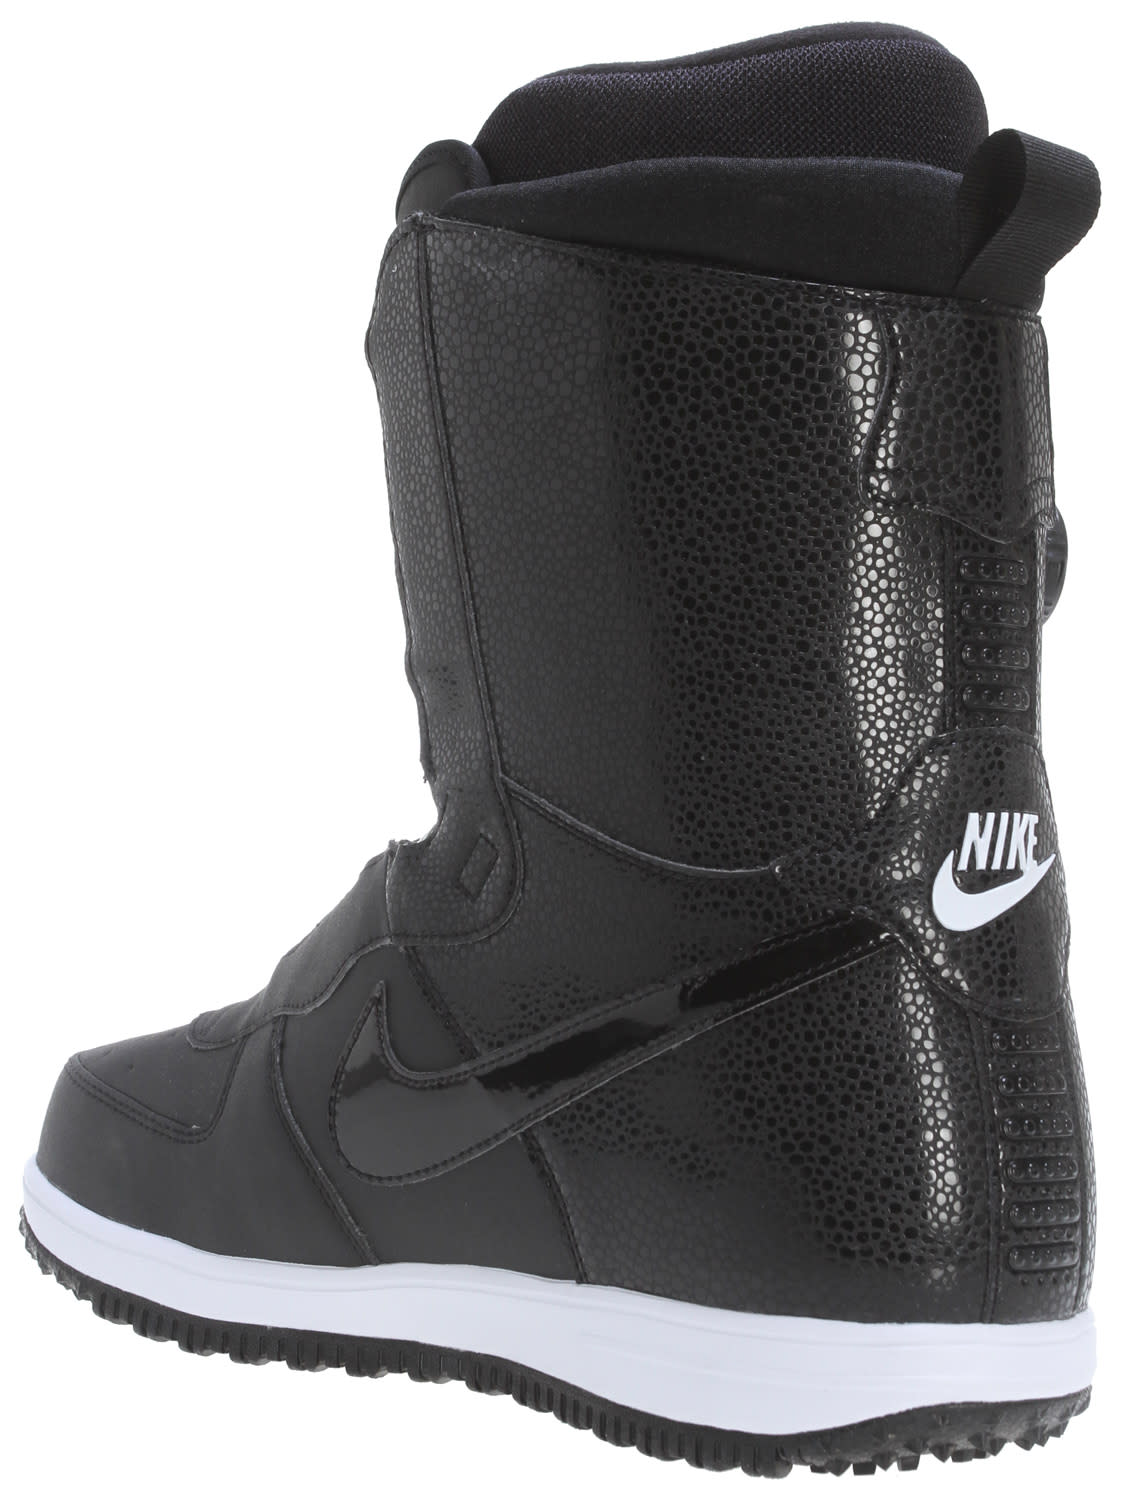 a90e11c88d387 Nike Zoom Force 1 X BOA Snowboard Boots 2014 on PopScreen